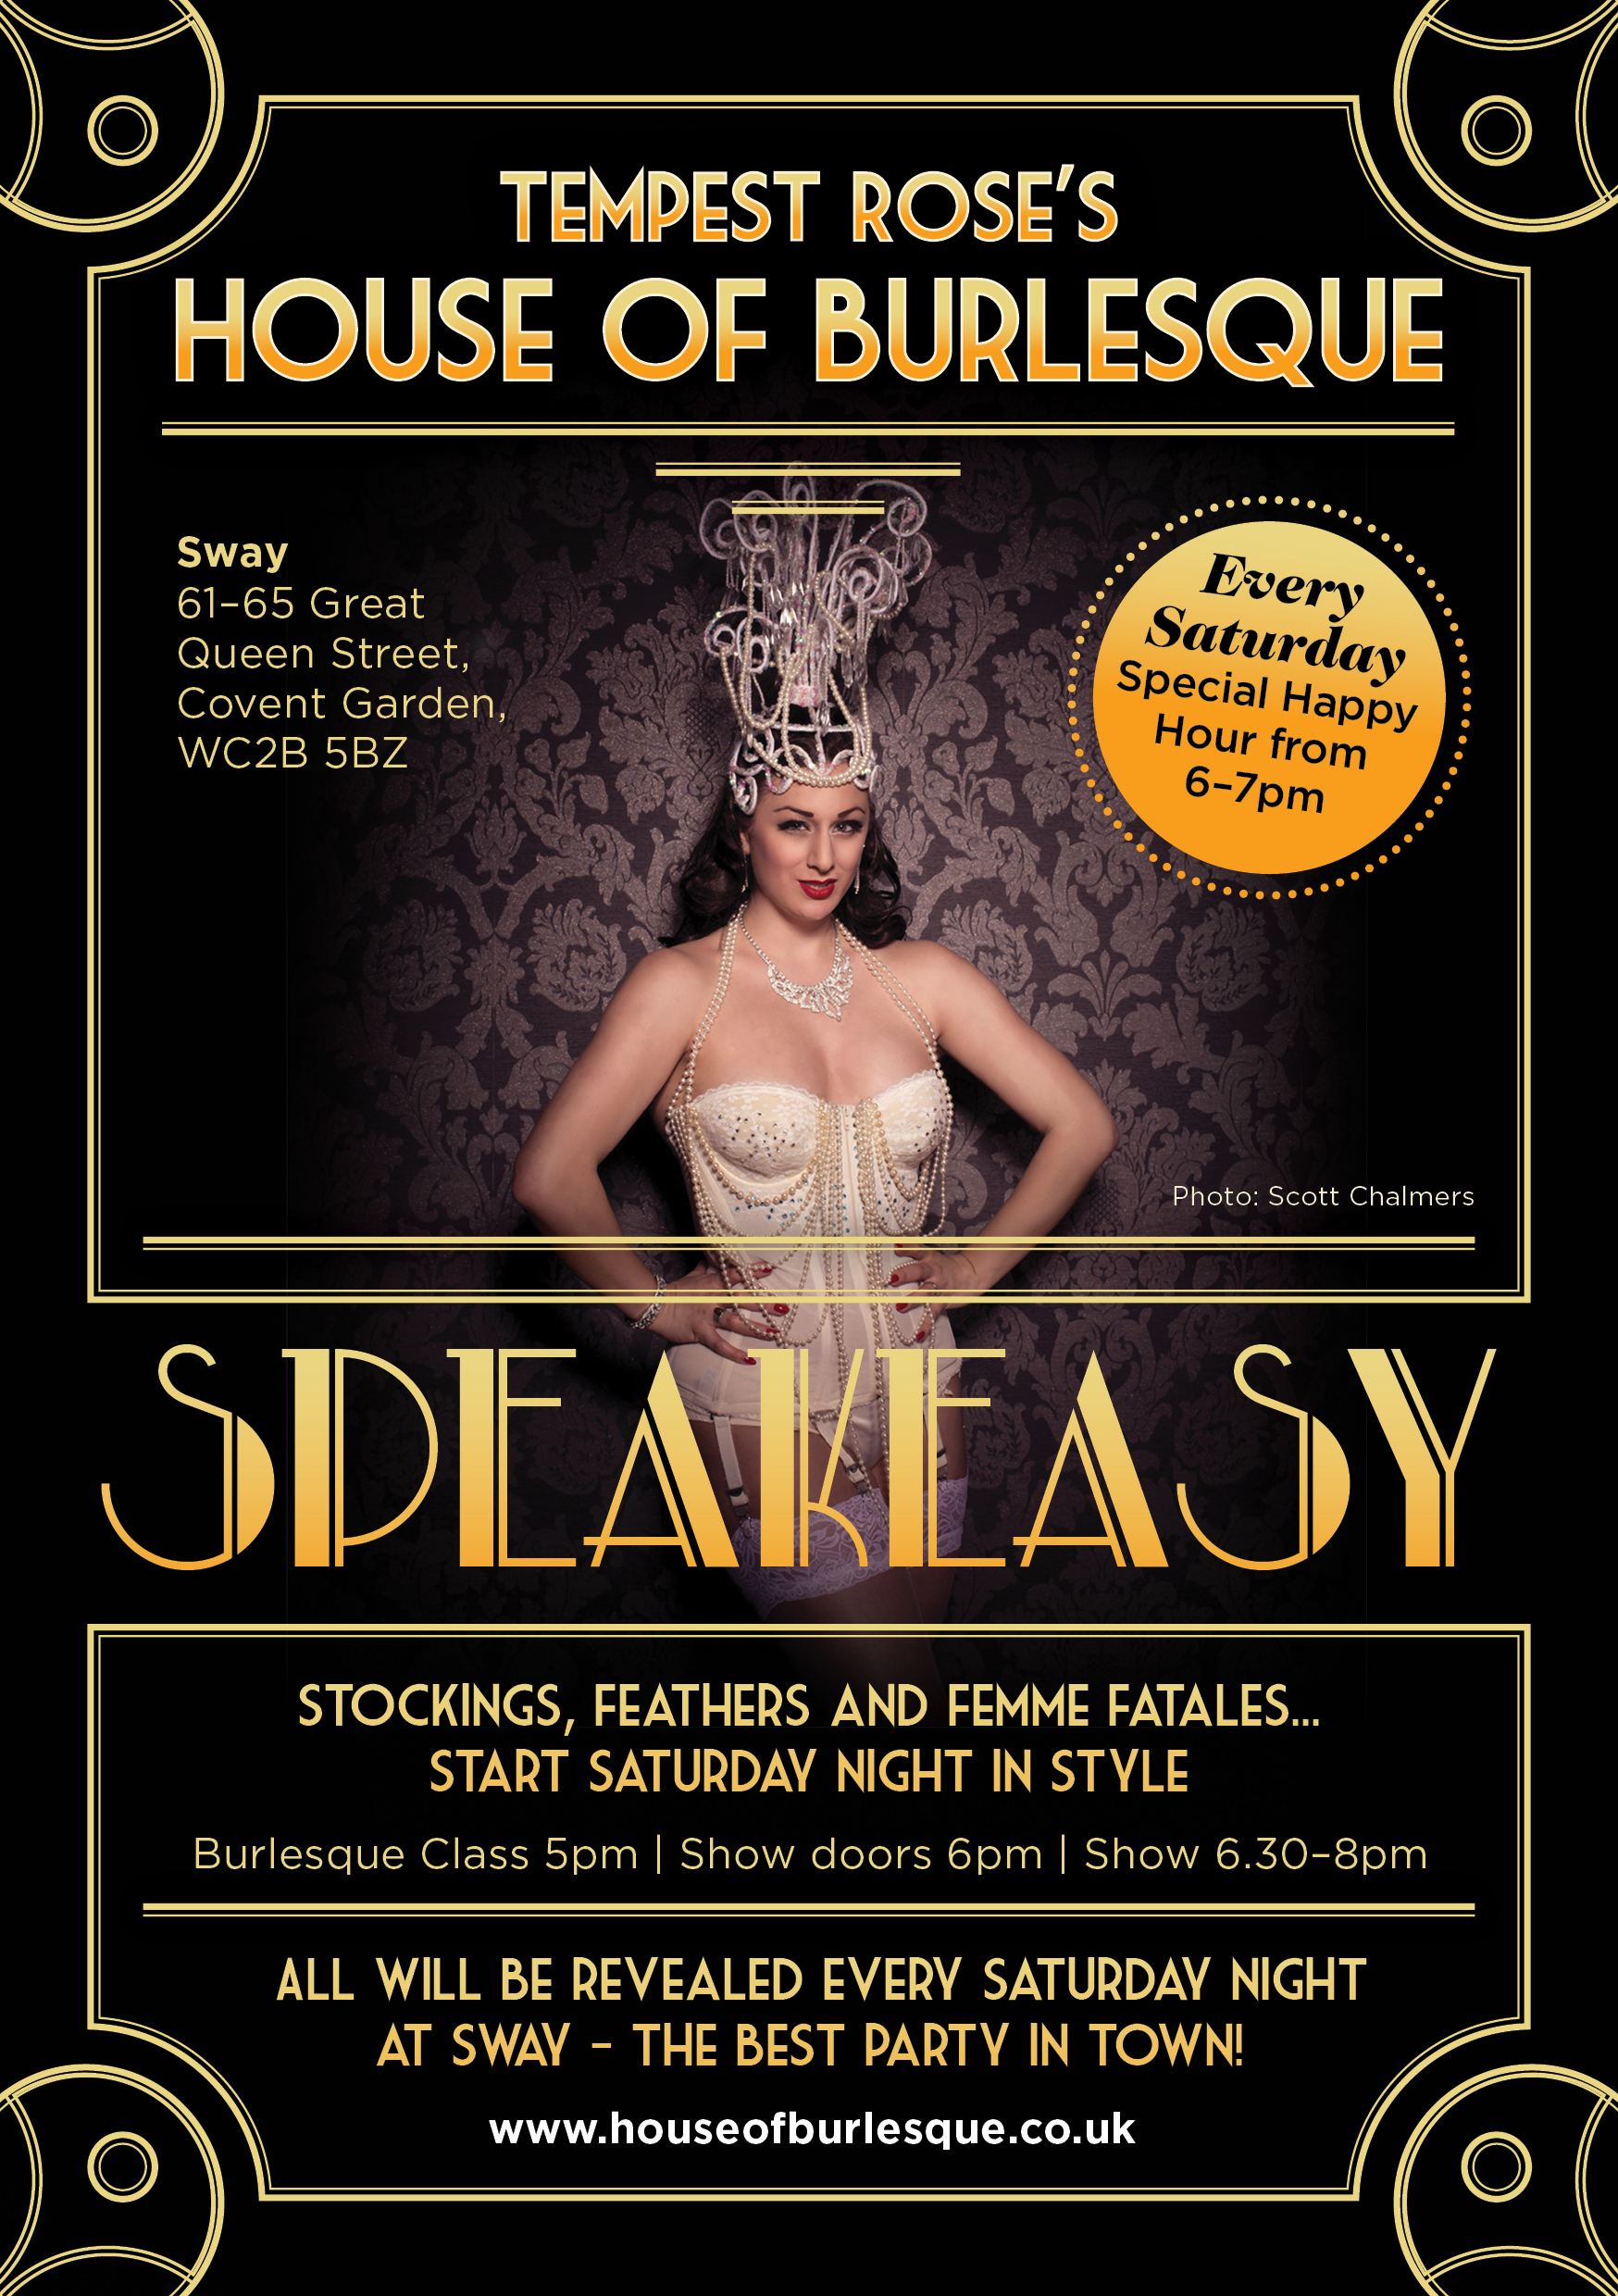 House Of Burlesque Speakeasy 2018.jpg